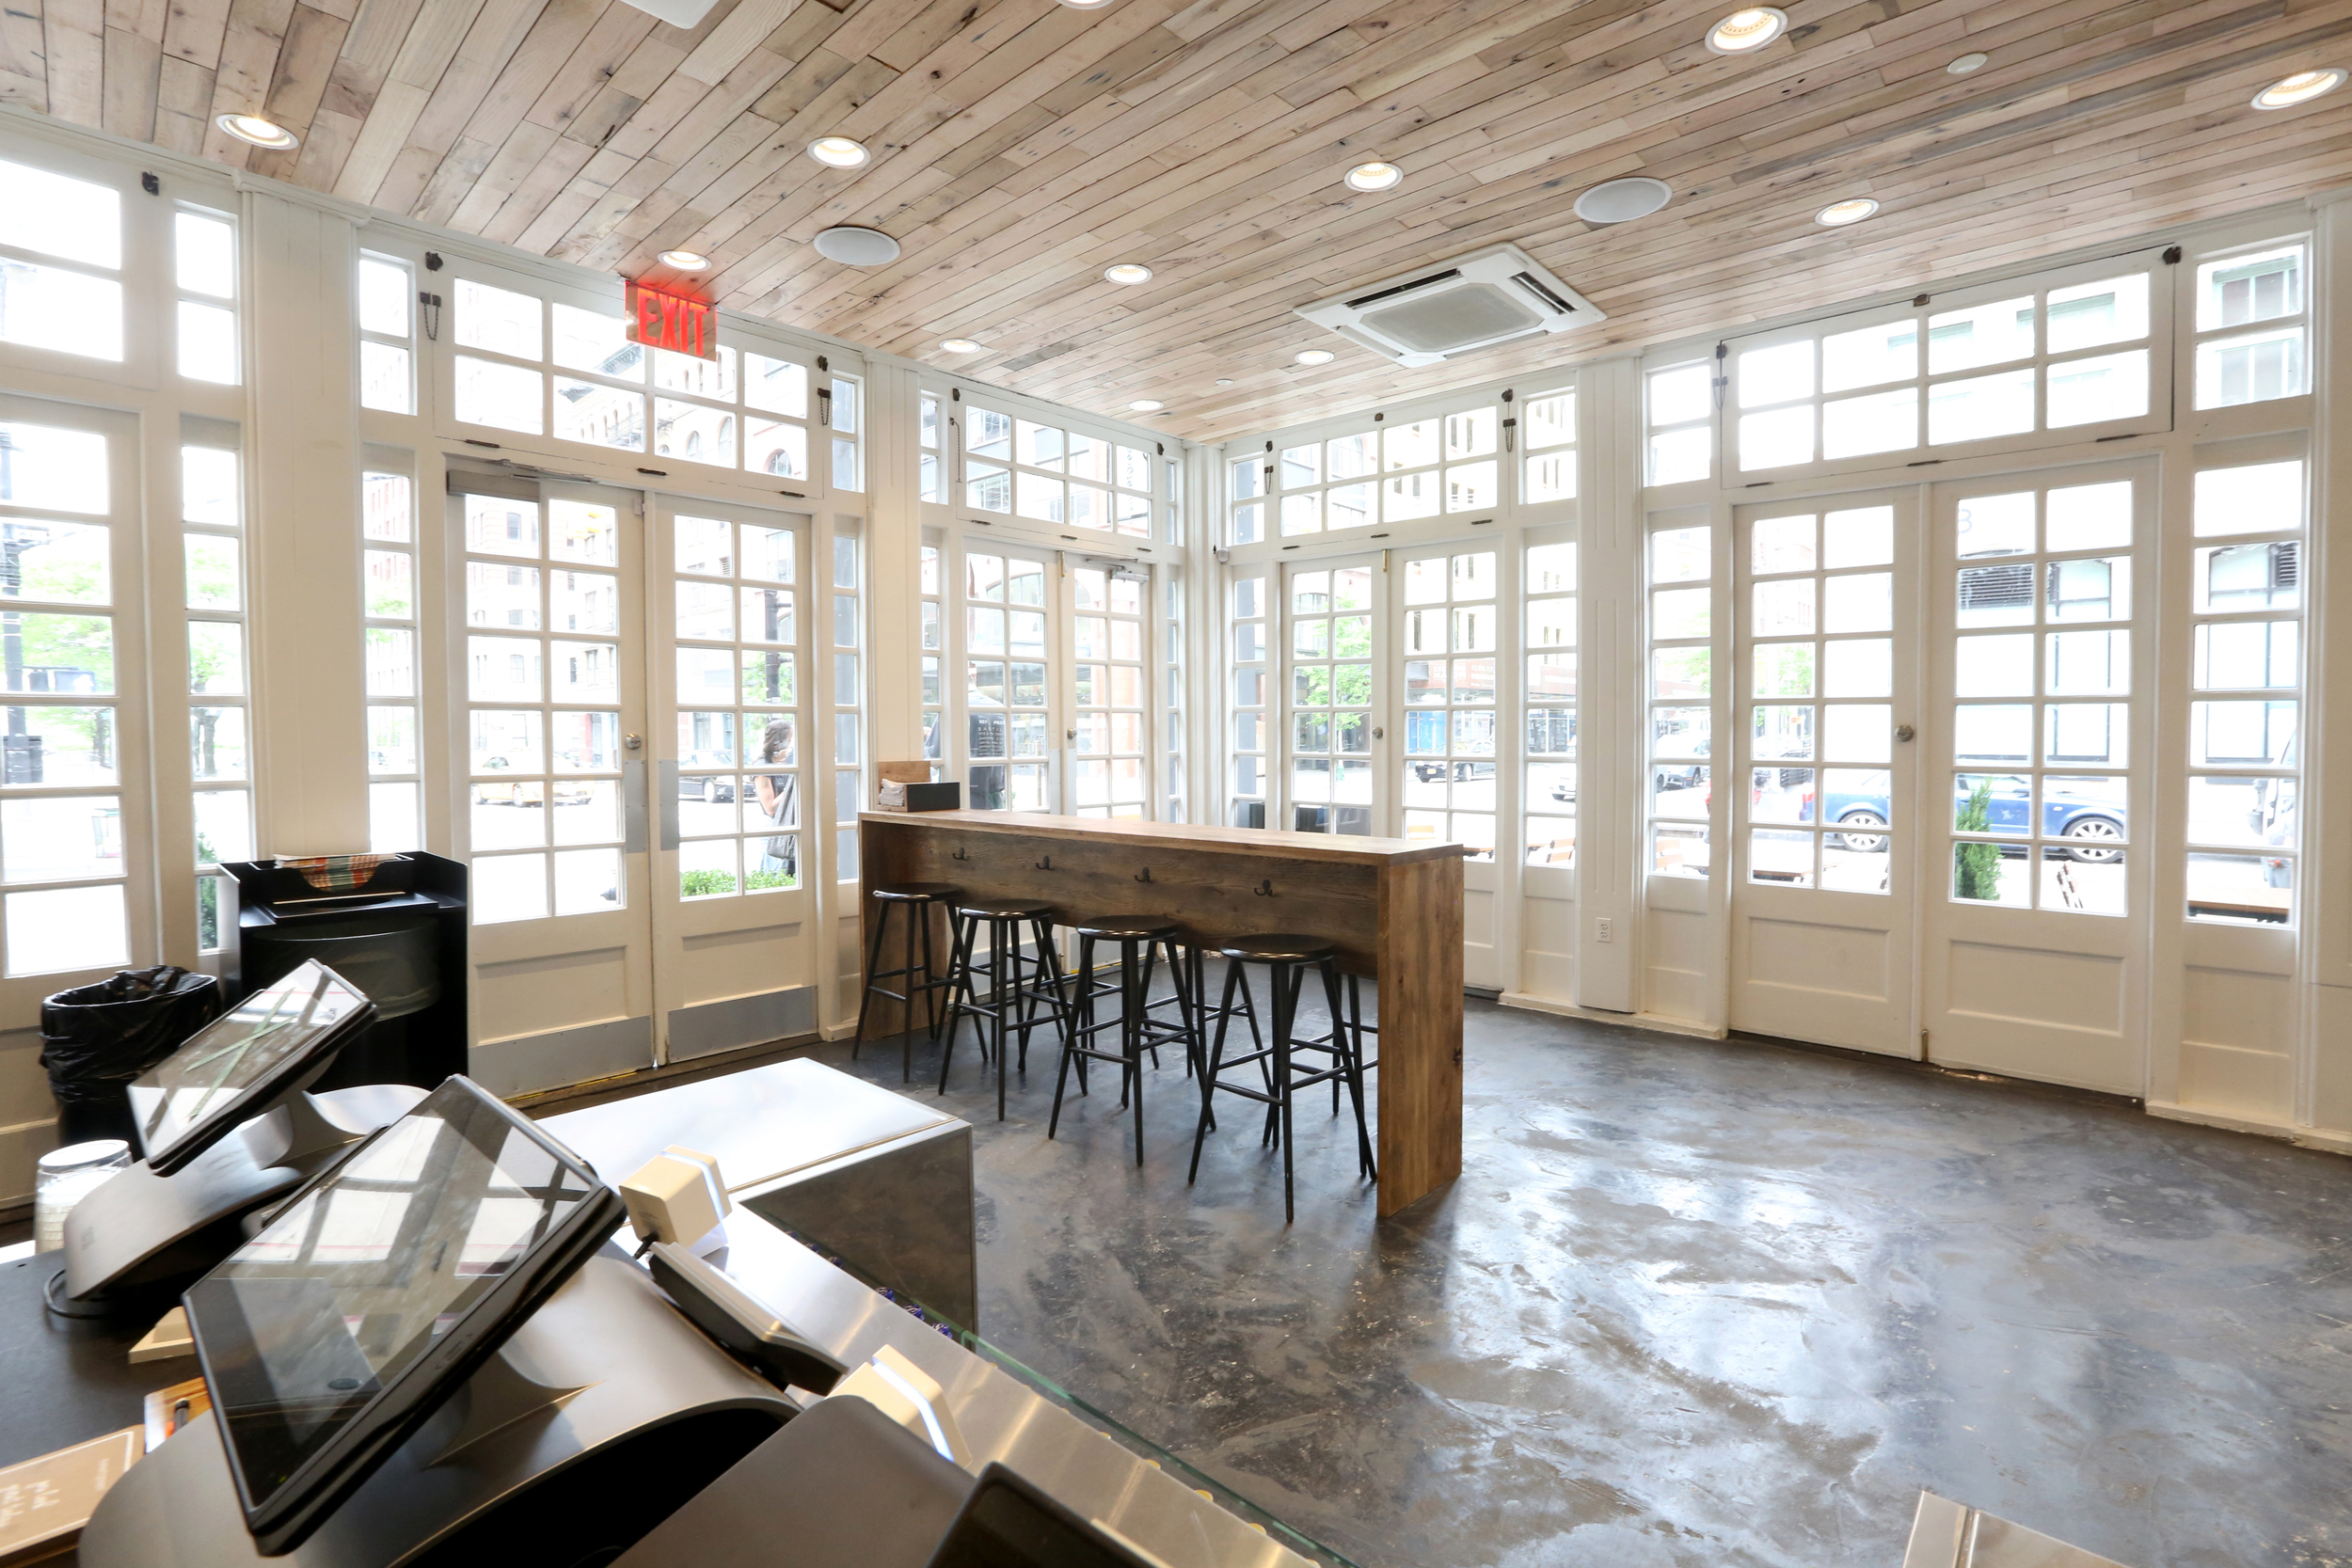 Sustainable hardwood flooring and reclaimed wood flooring designed in Brooklyn and made in New York.